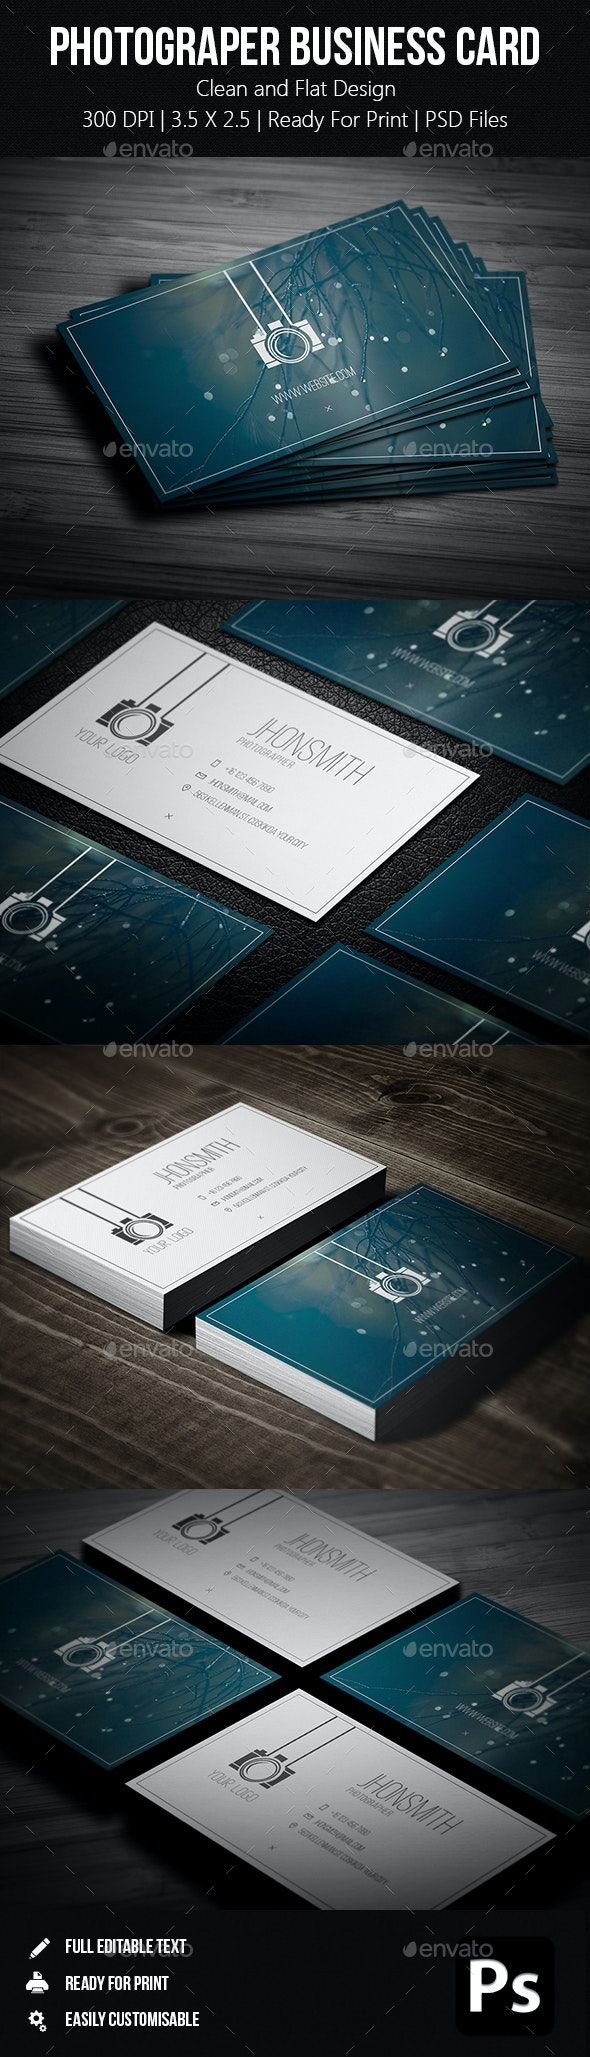 Creative Photgrapher Business Card 05 - Creative Business Cards